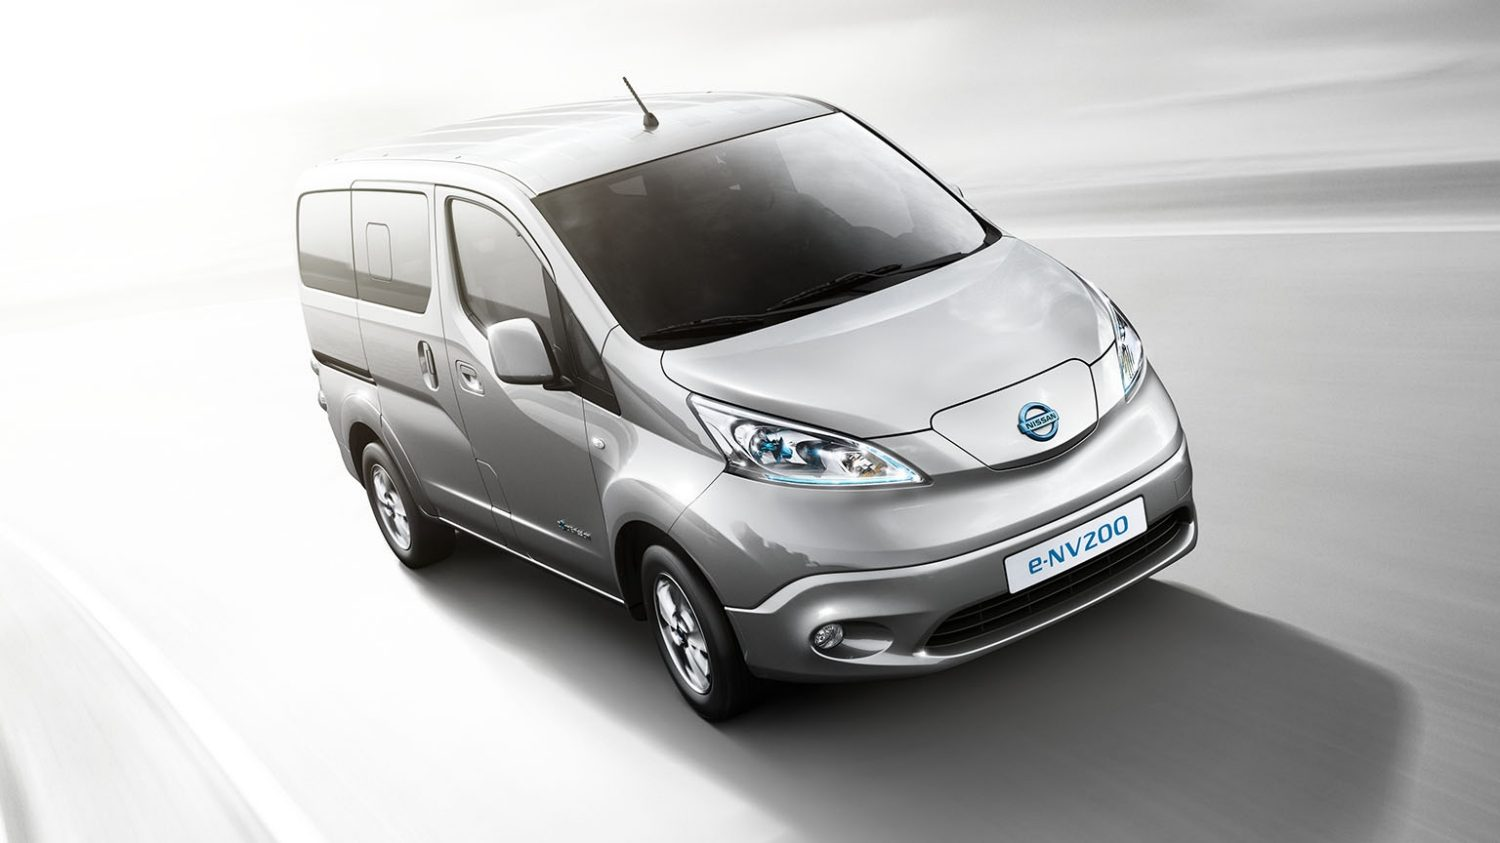 quipements nissan e nv200 evalia voiture lectrique familiale nissan. Black Bedroom Furniture Sets. Home Design Ideas